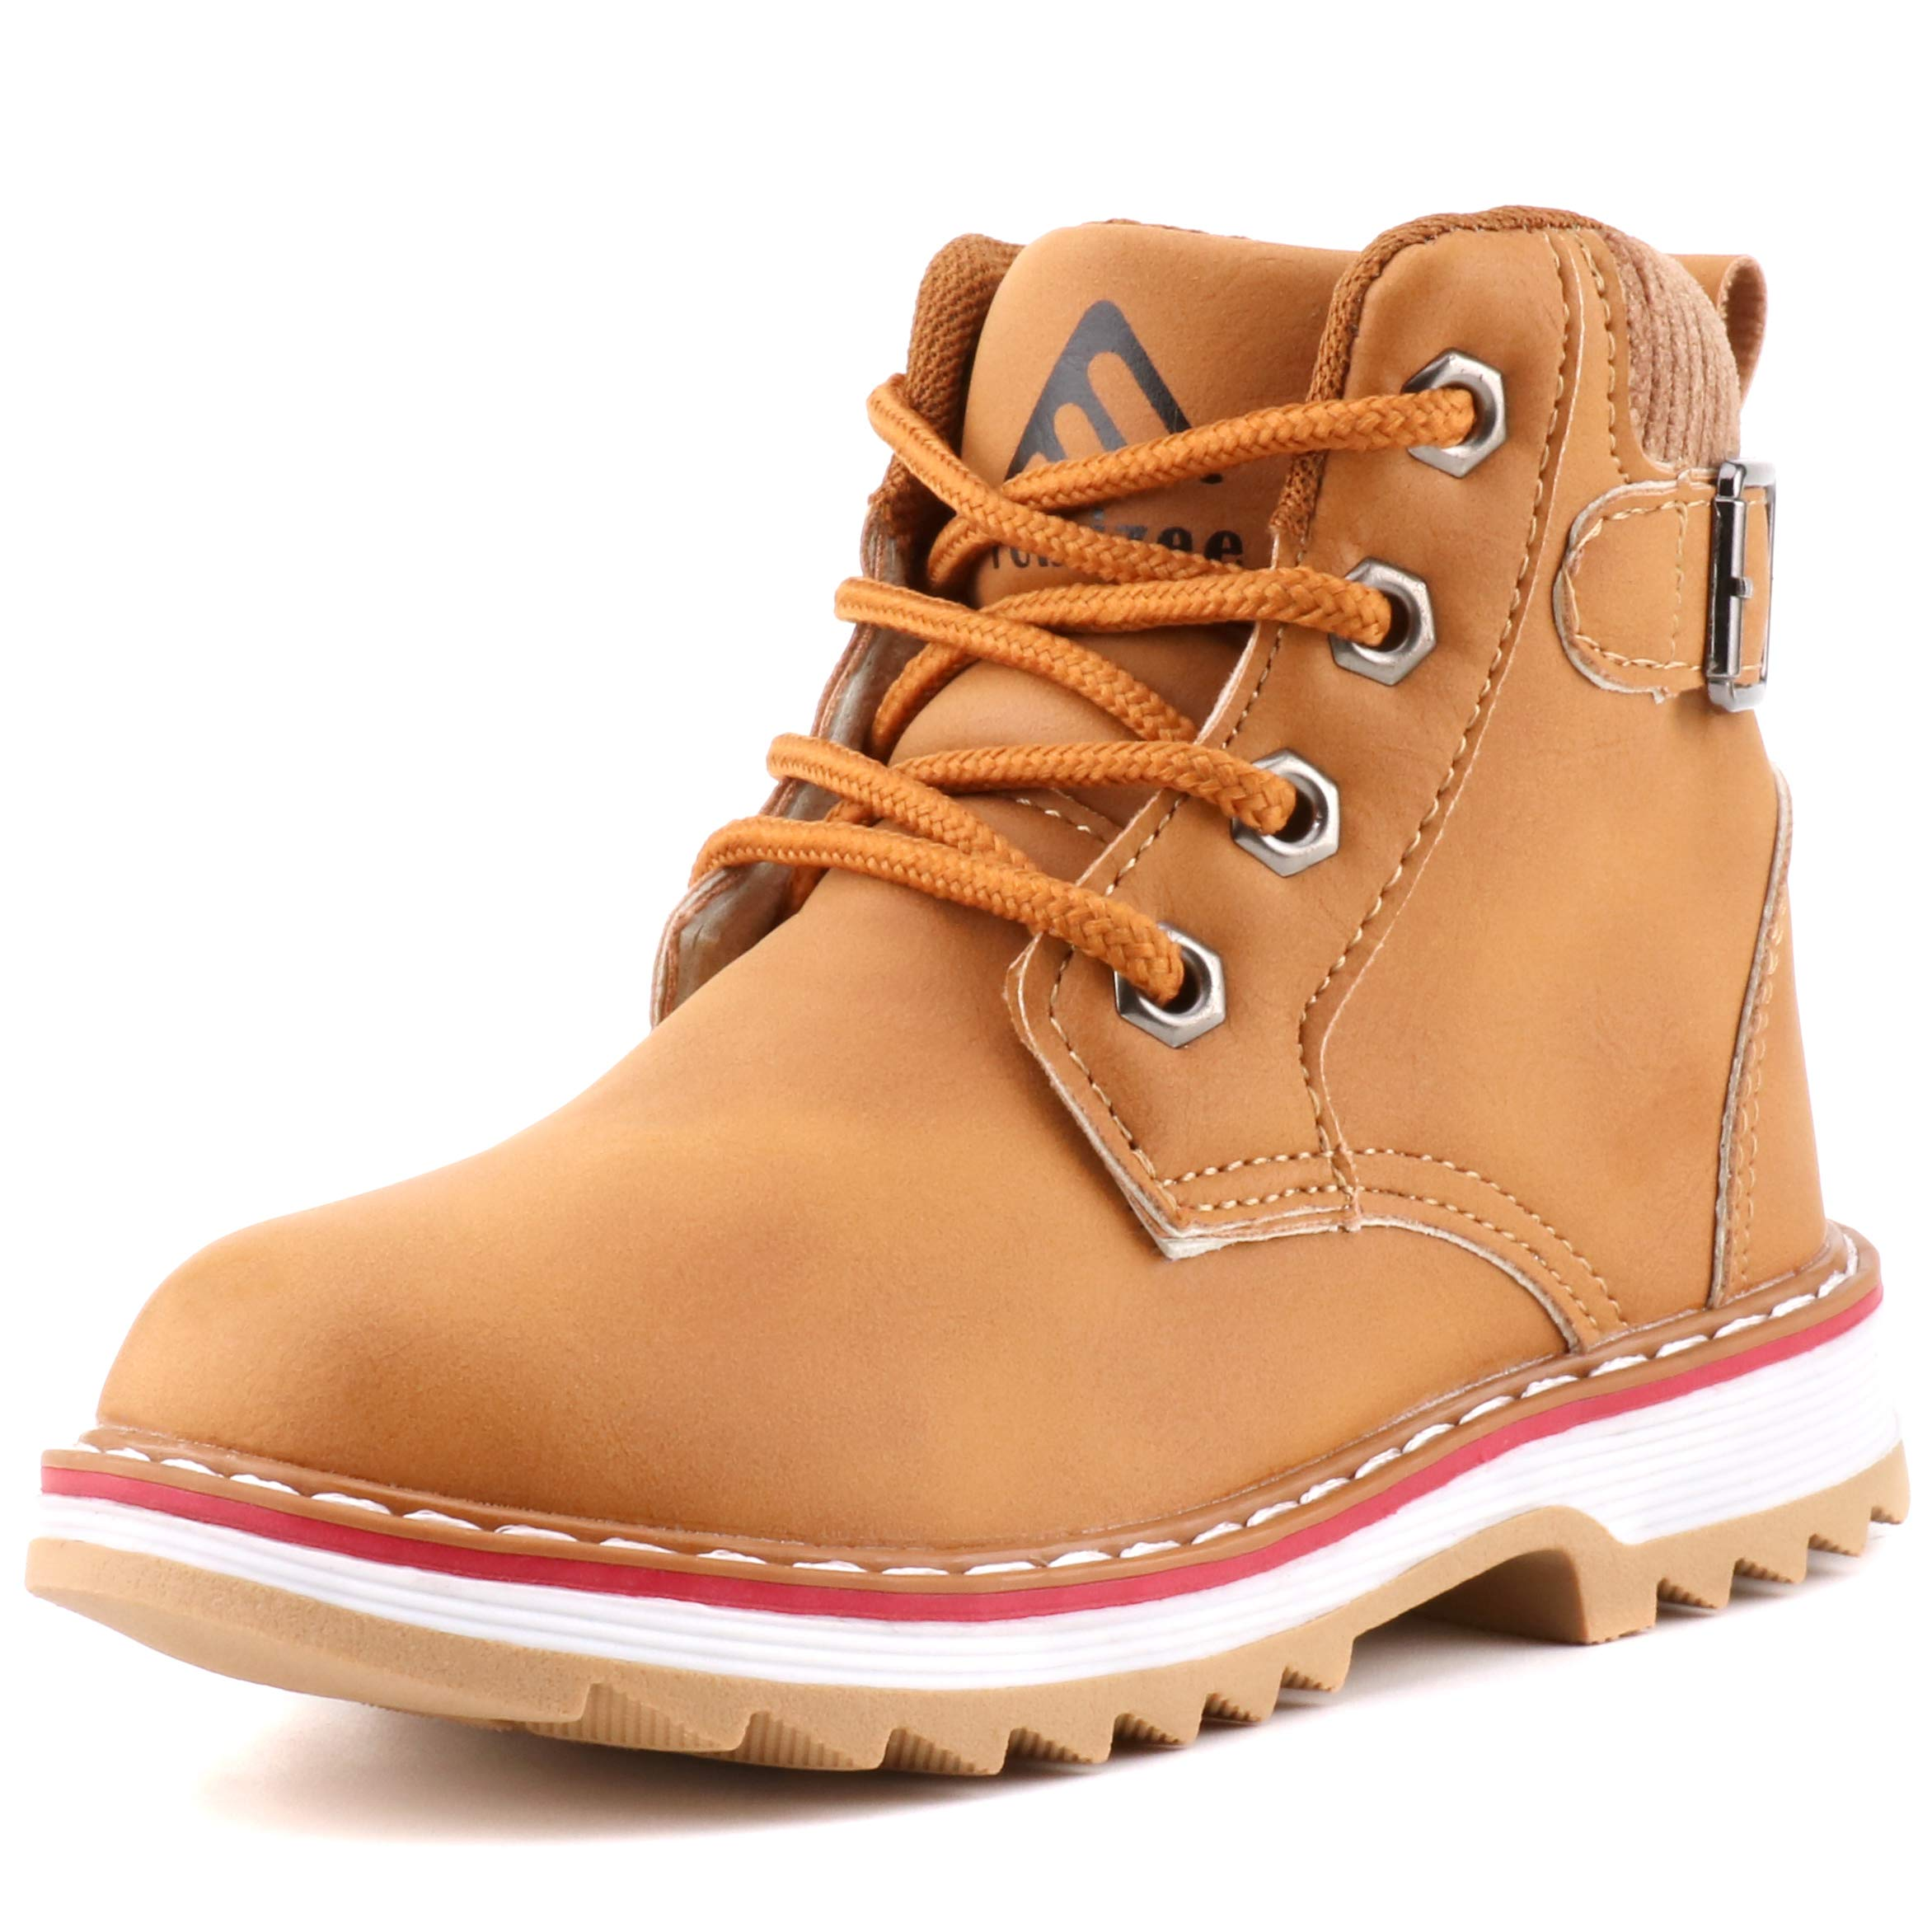 Femizee Boys Lace Up Work Boots Classic Waterproof Outdoor Hiking Booties for Kids, Wheat, 1946 CN28